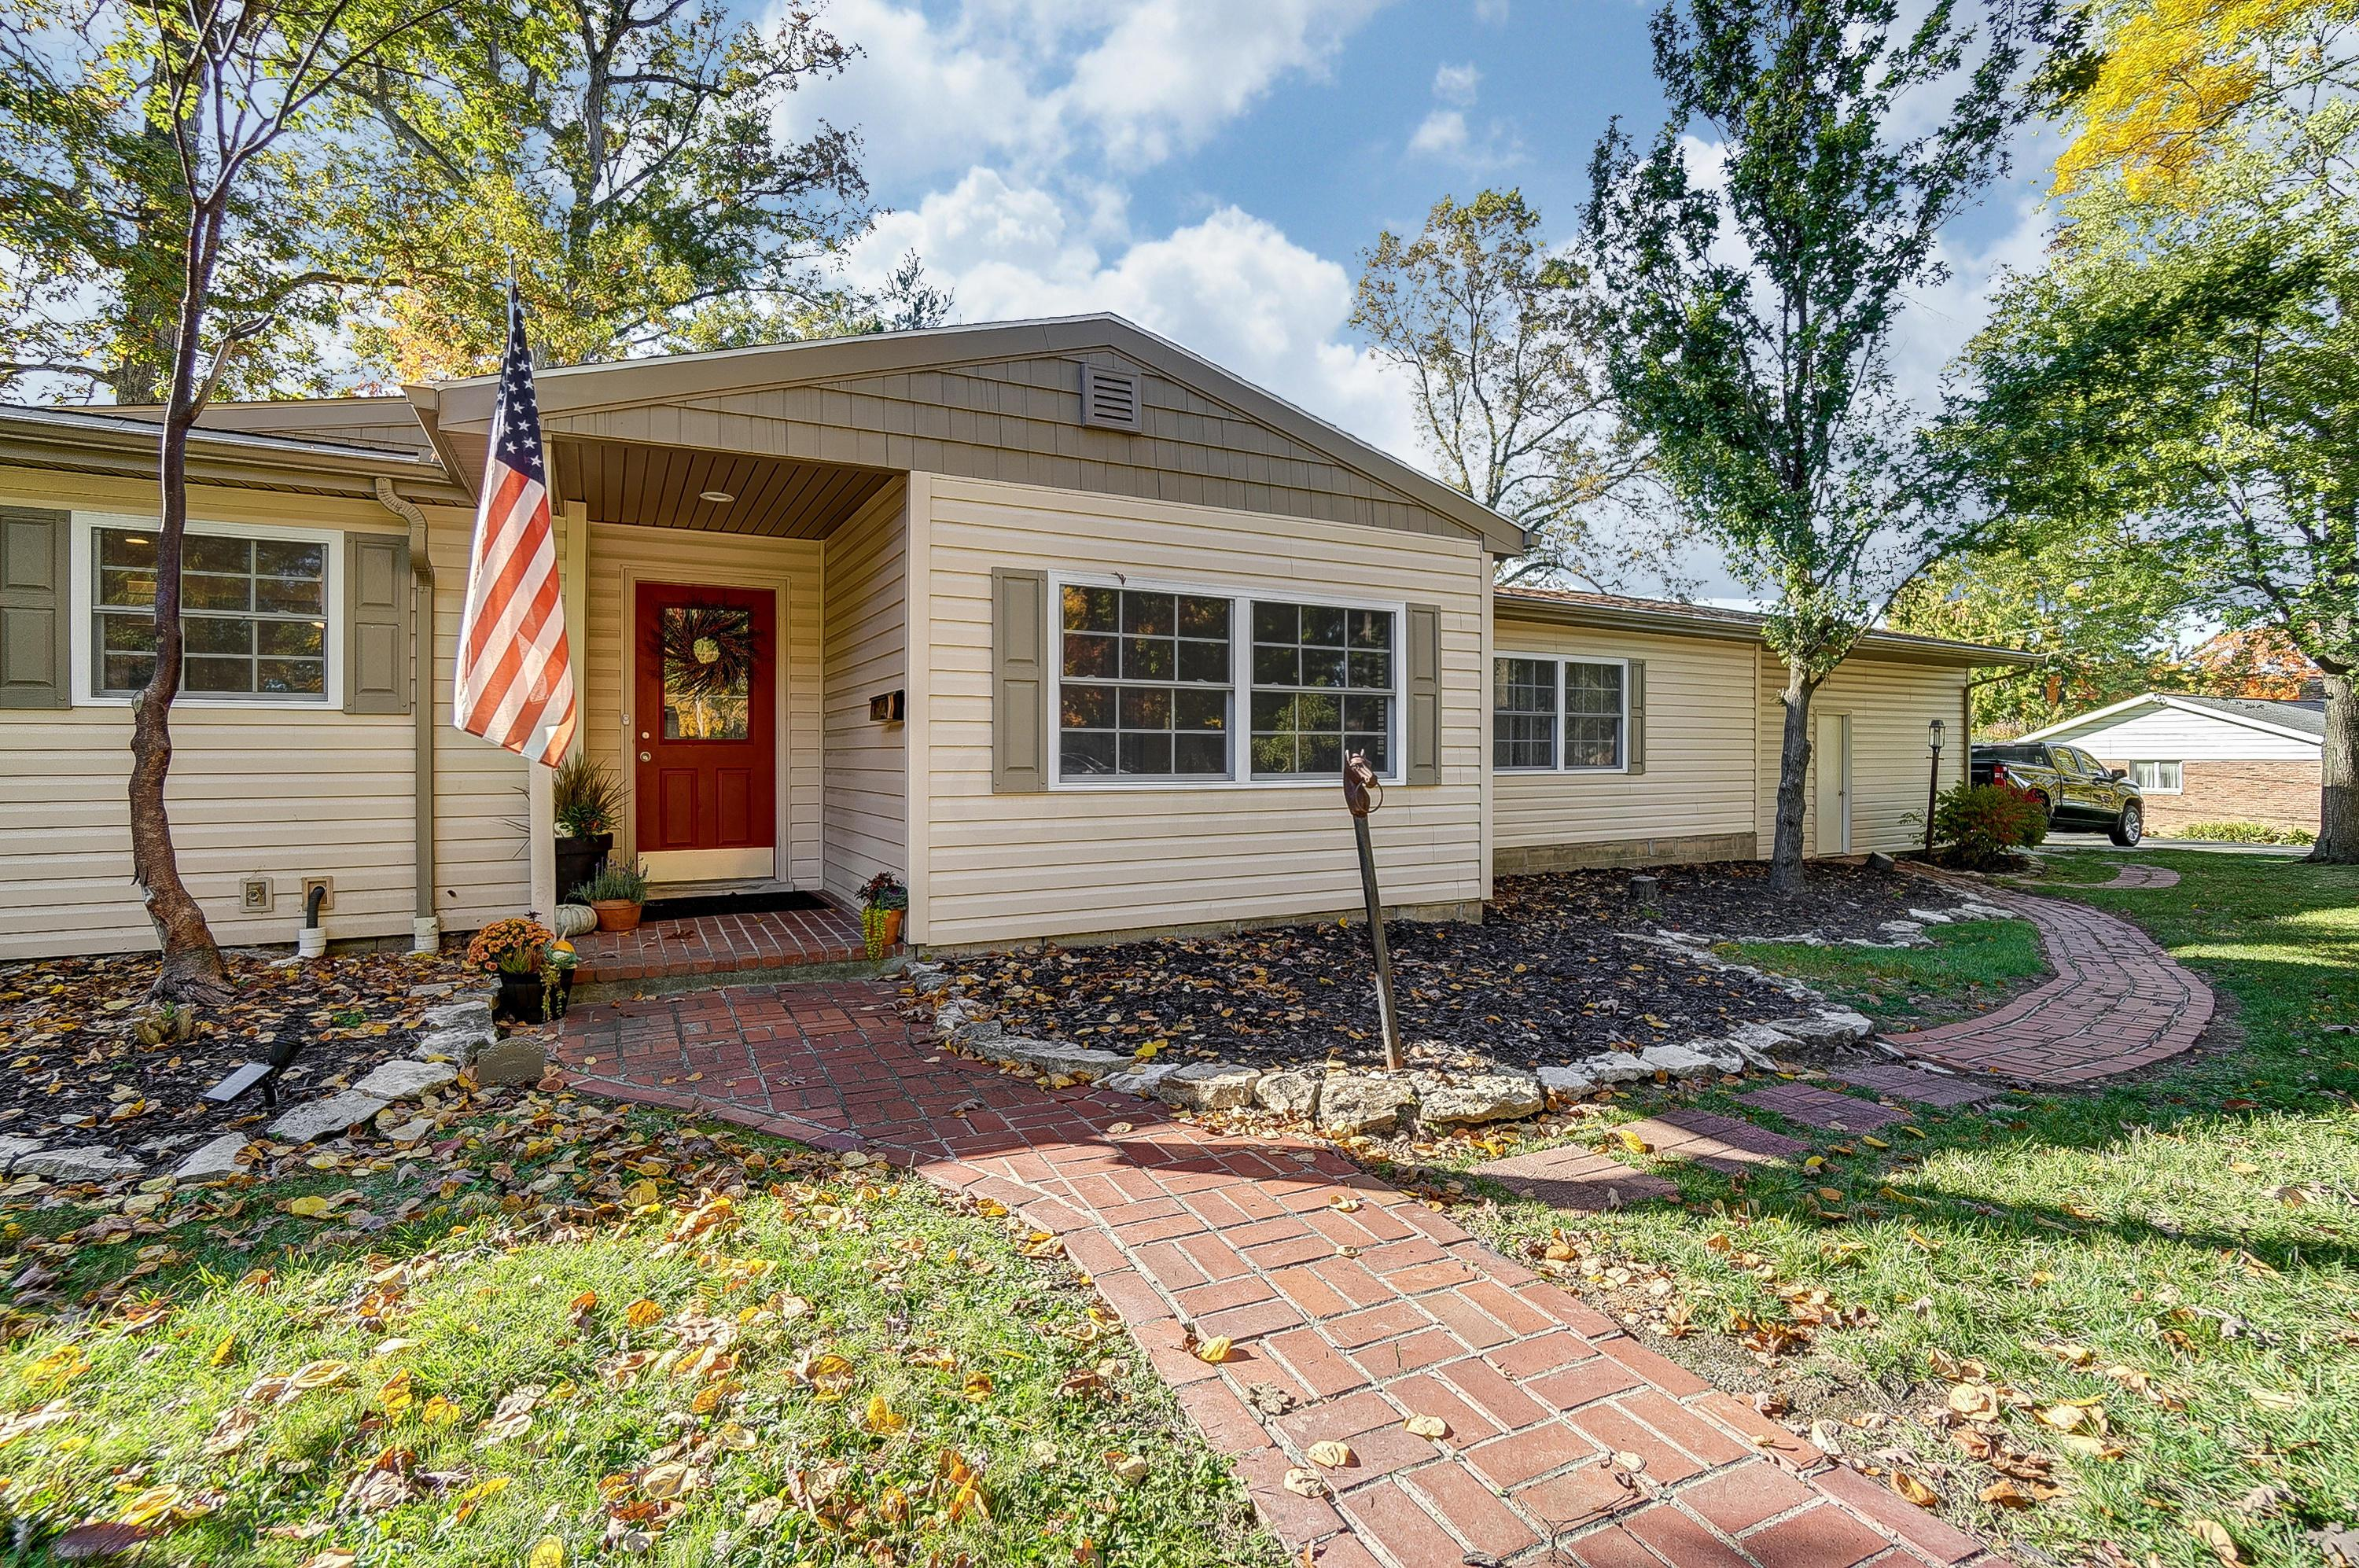 241 Grand Avenue, Marysville, Ohio 43040, 5 Bedrooms Bedrooms, ,3 BathroomsBathrooms,Residential,For Sale,Grand,220041143